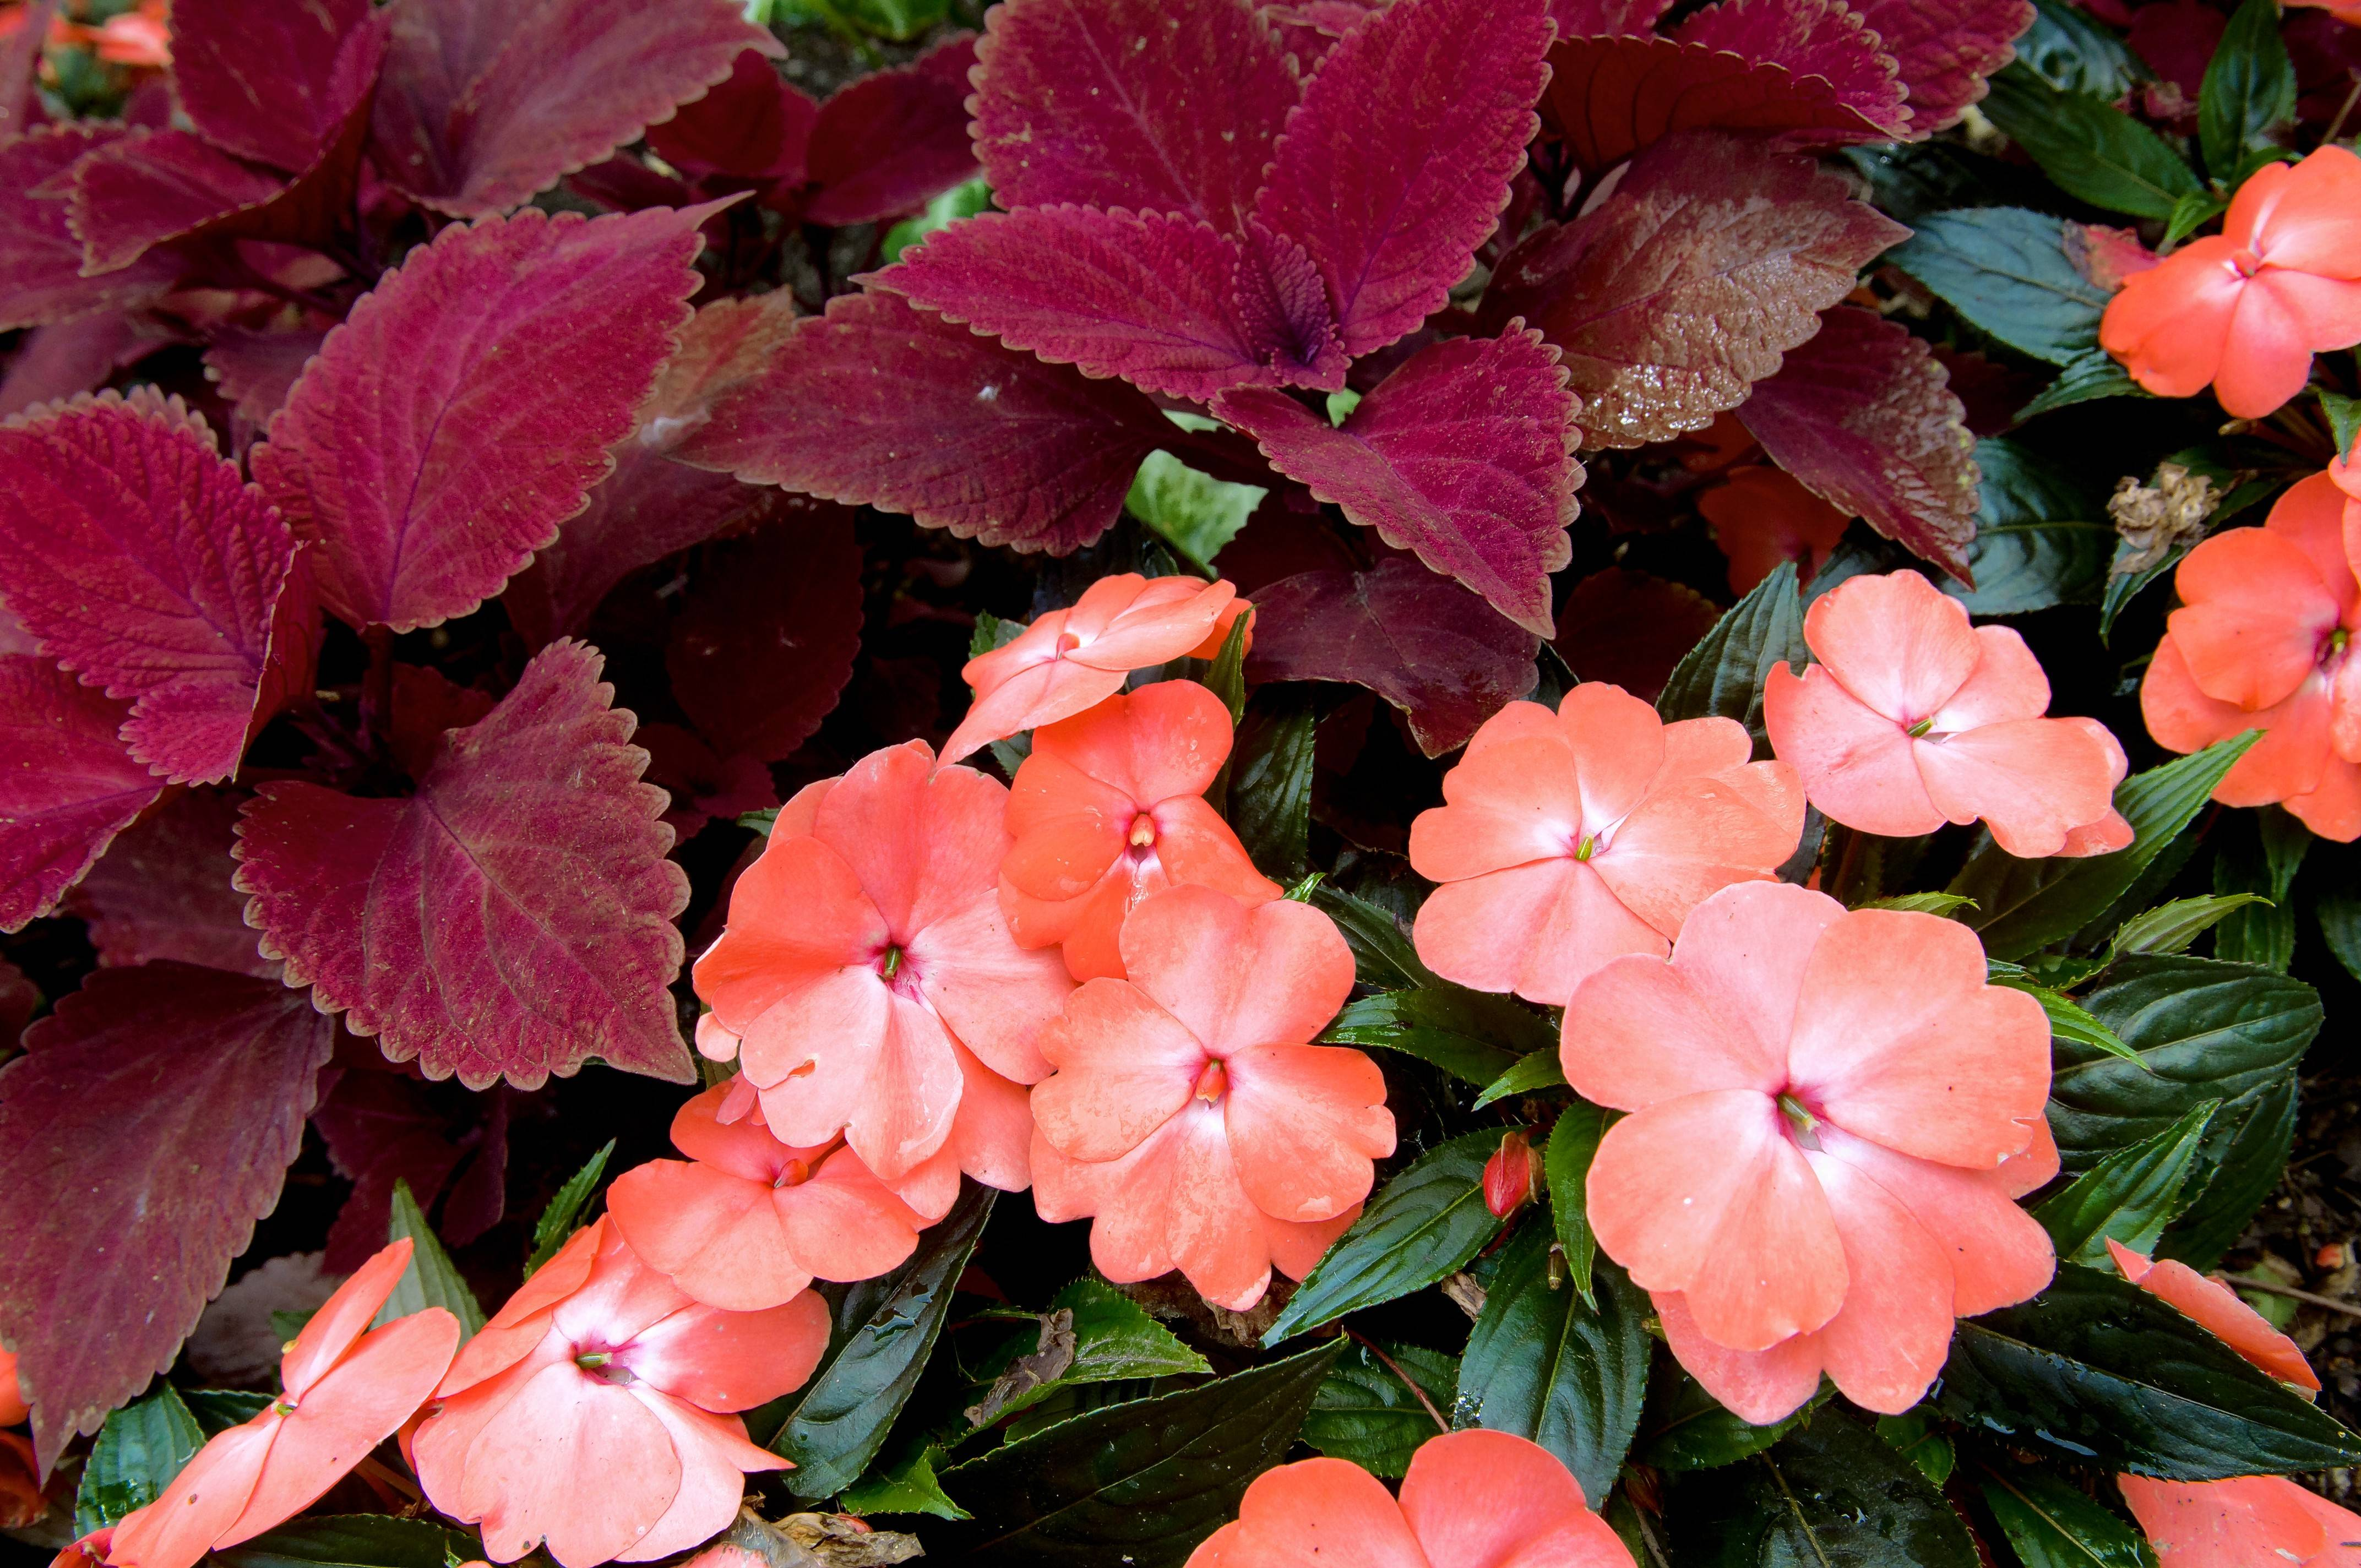 Impatiens and coleus may be badly damaged by a cold spell, so plant them later in May.